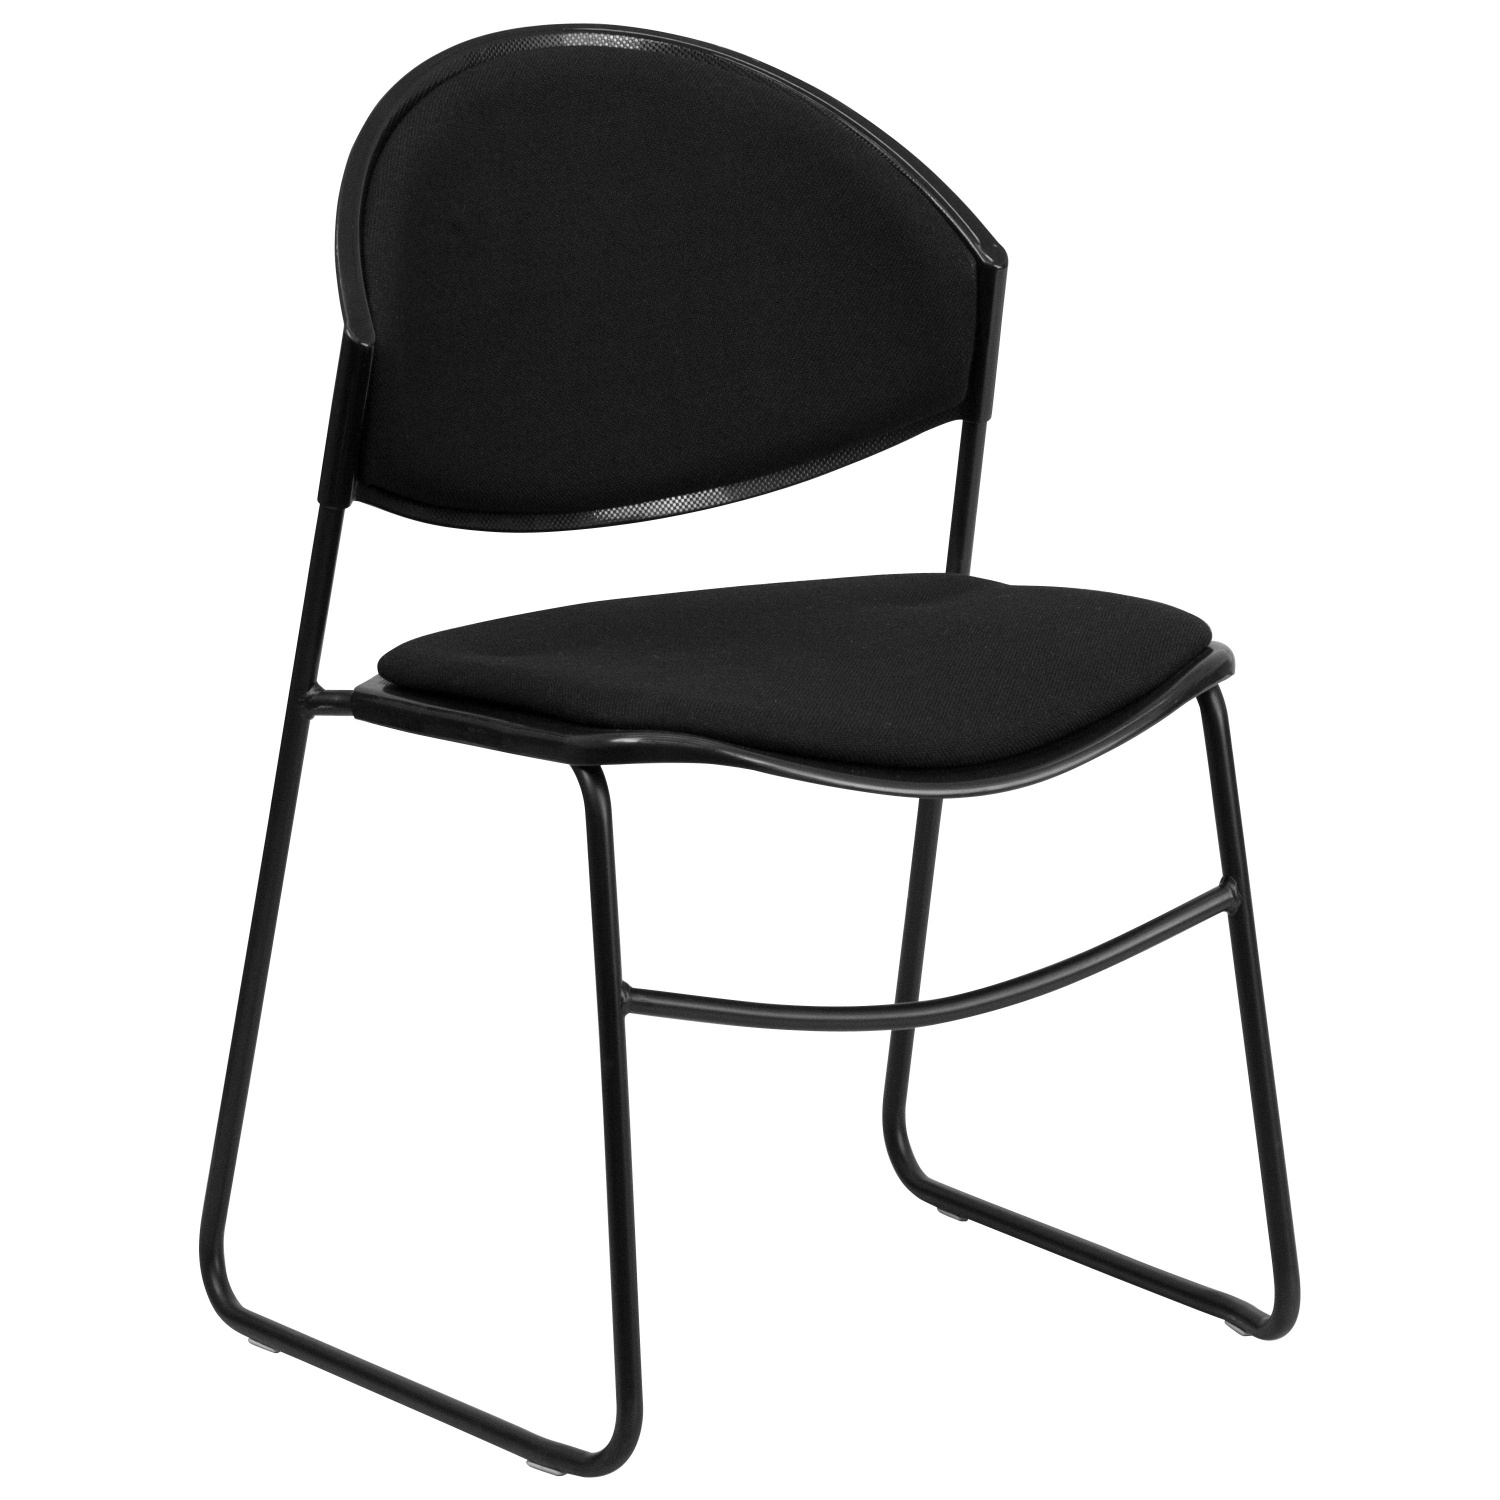 Flash Furniture RUT-CA02-01-BK-PAD-GG HERCULES Series 550 lb. Capacity Black Padded Stack Chair with Black Powder Coated Frame Finish